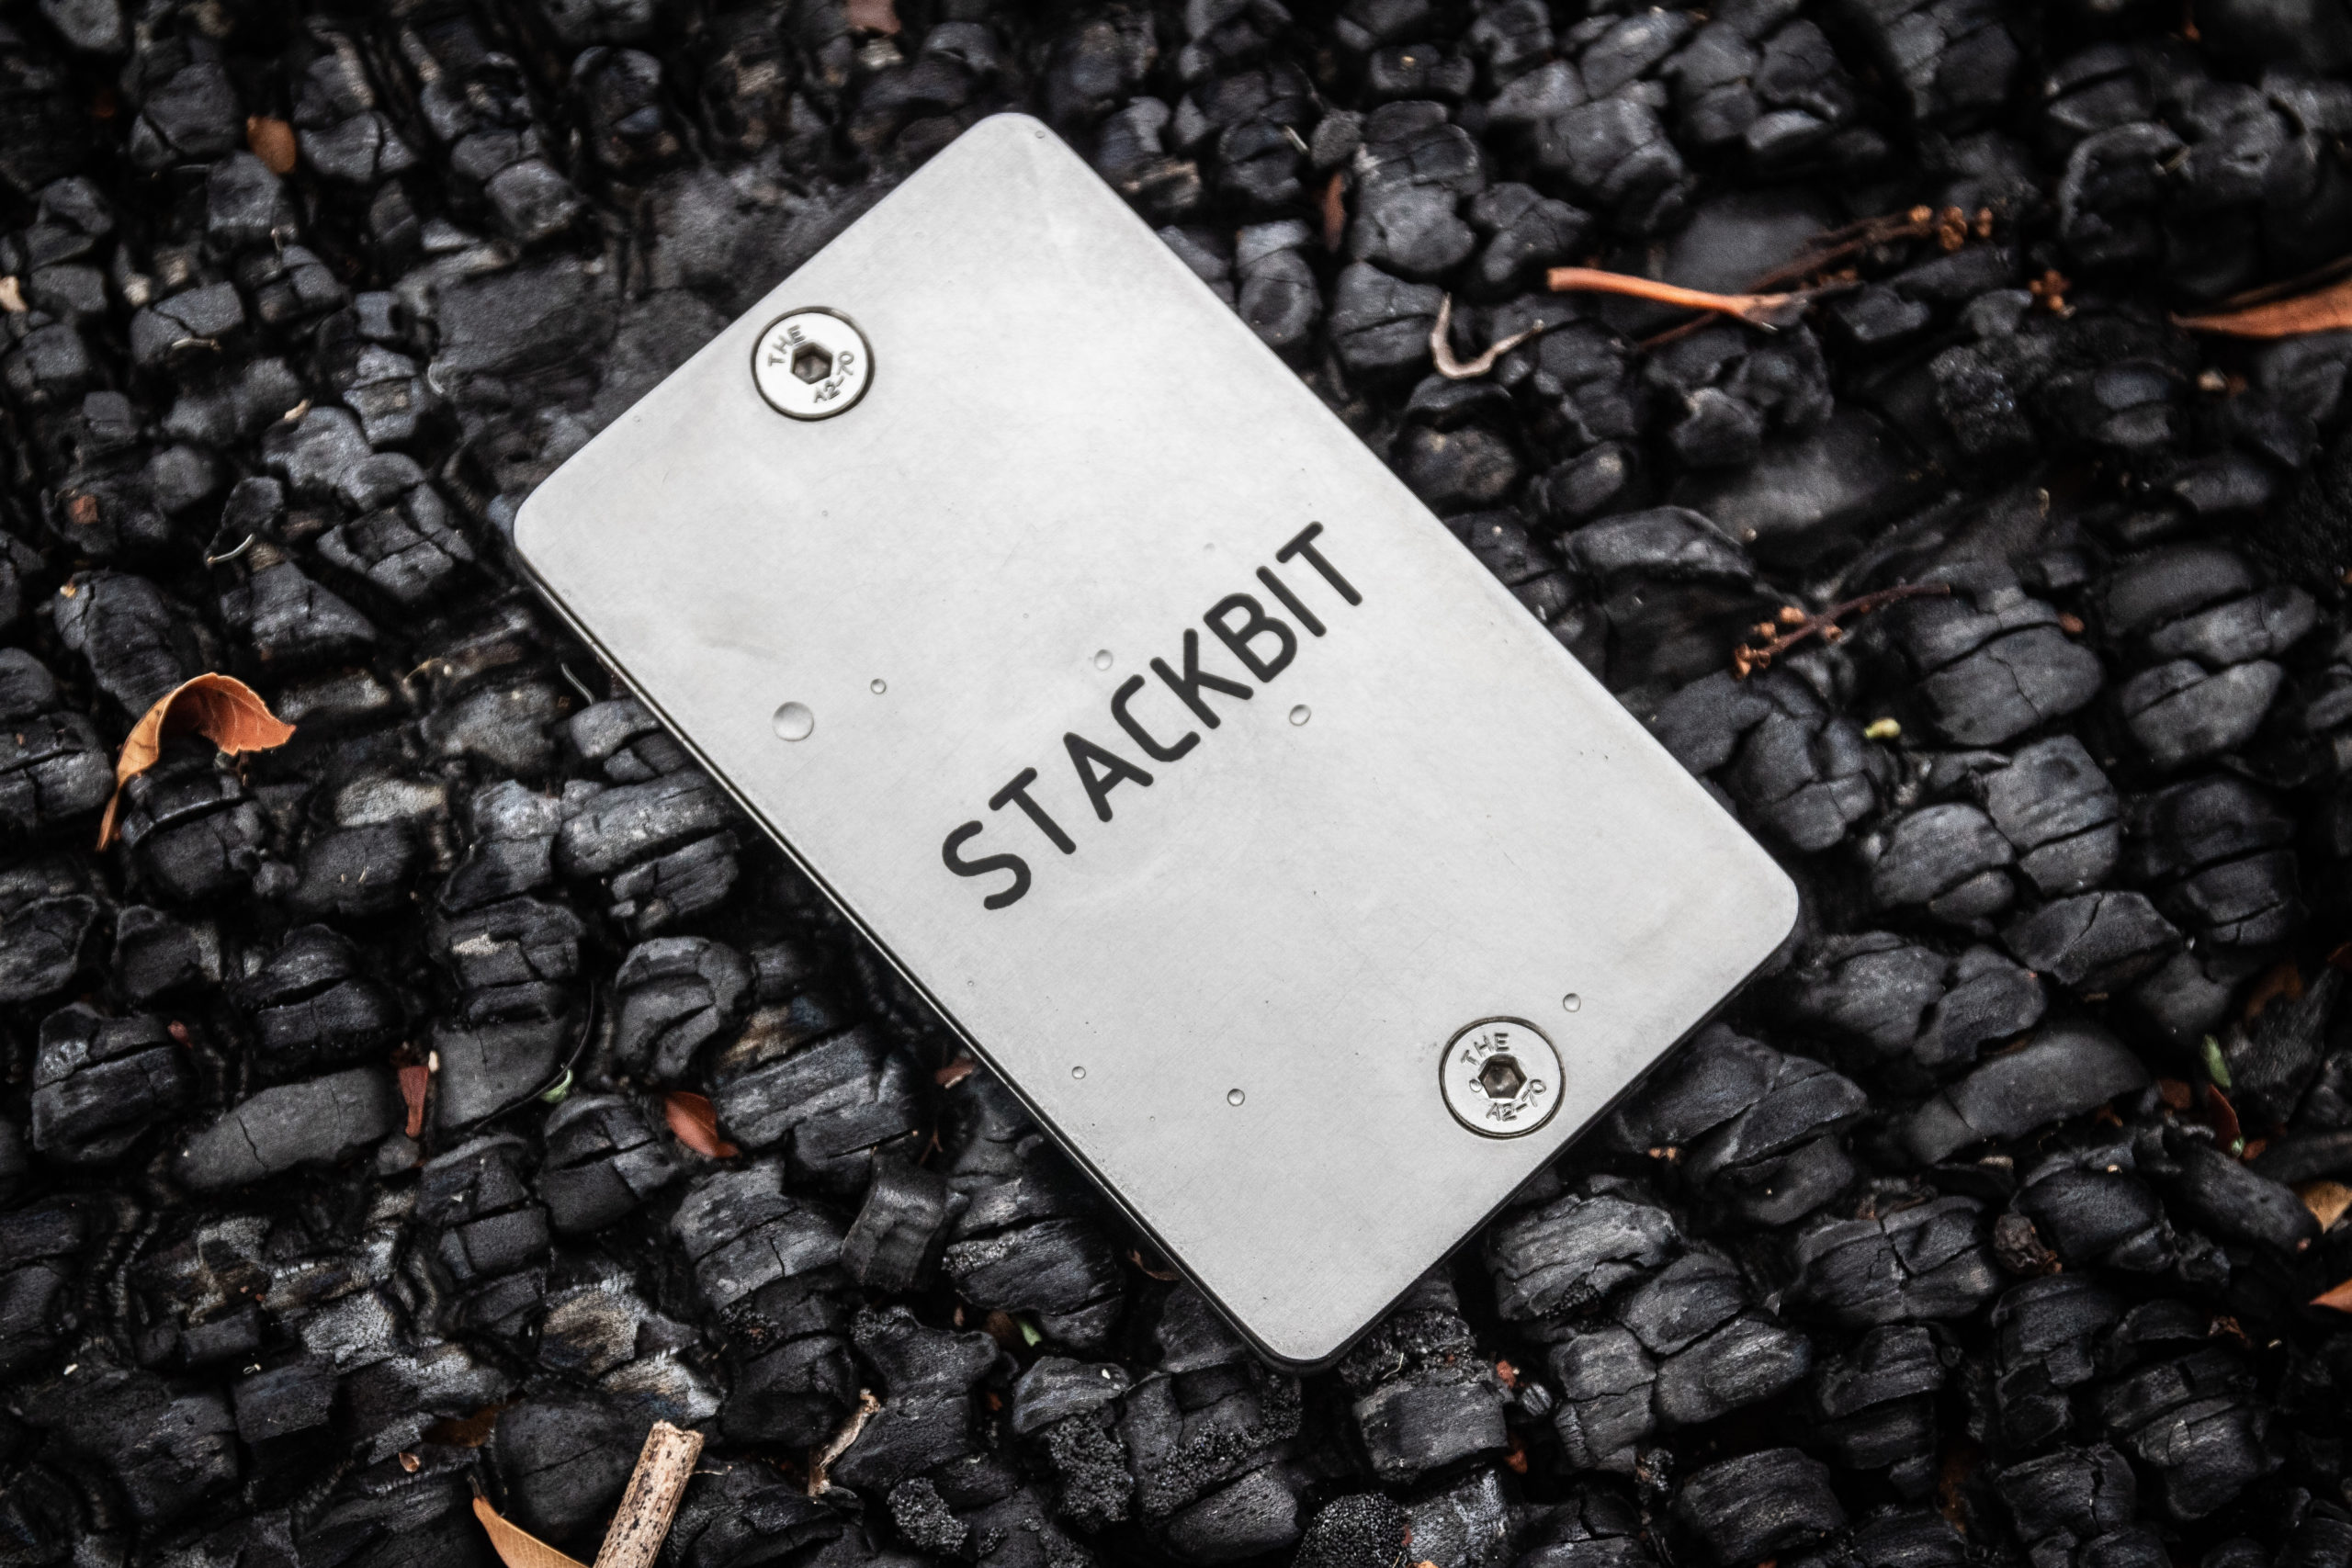 Stackbit bitcoin metalwallet crypto backup seed mnemonic phrase chave privada